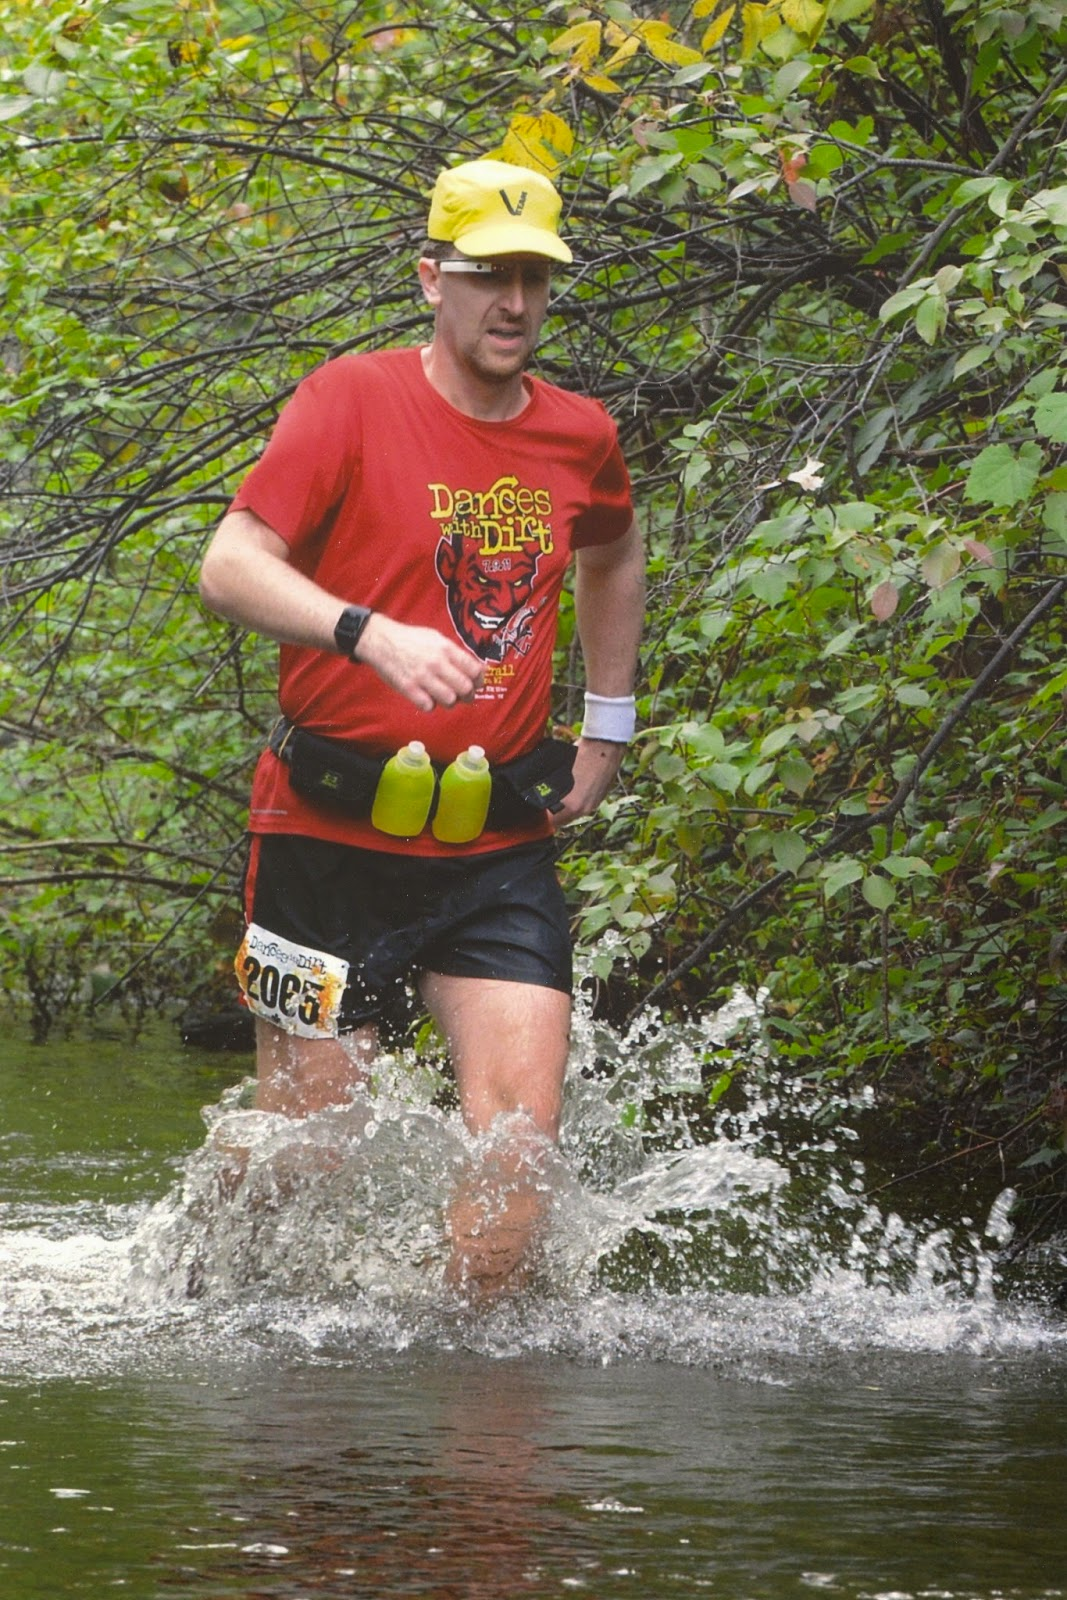 Running in a river at mile 22